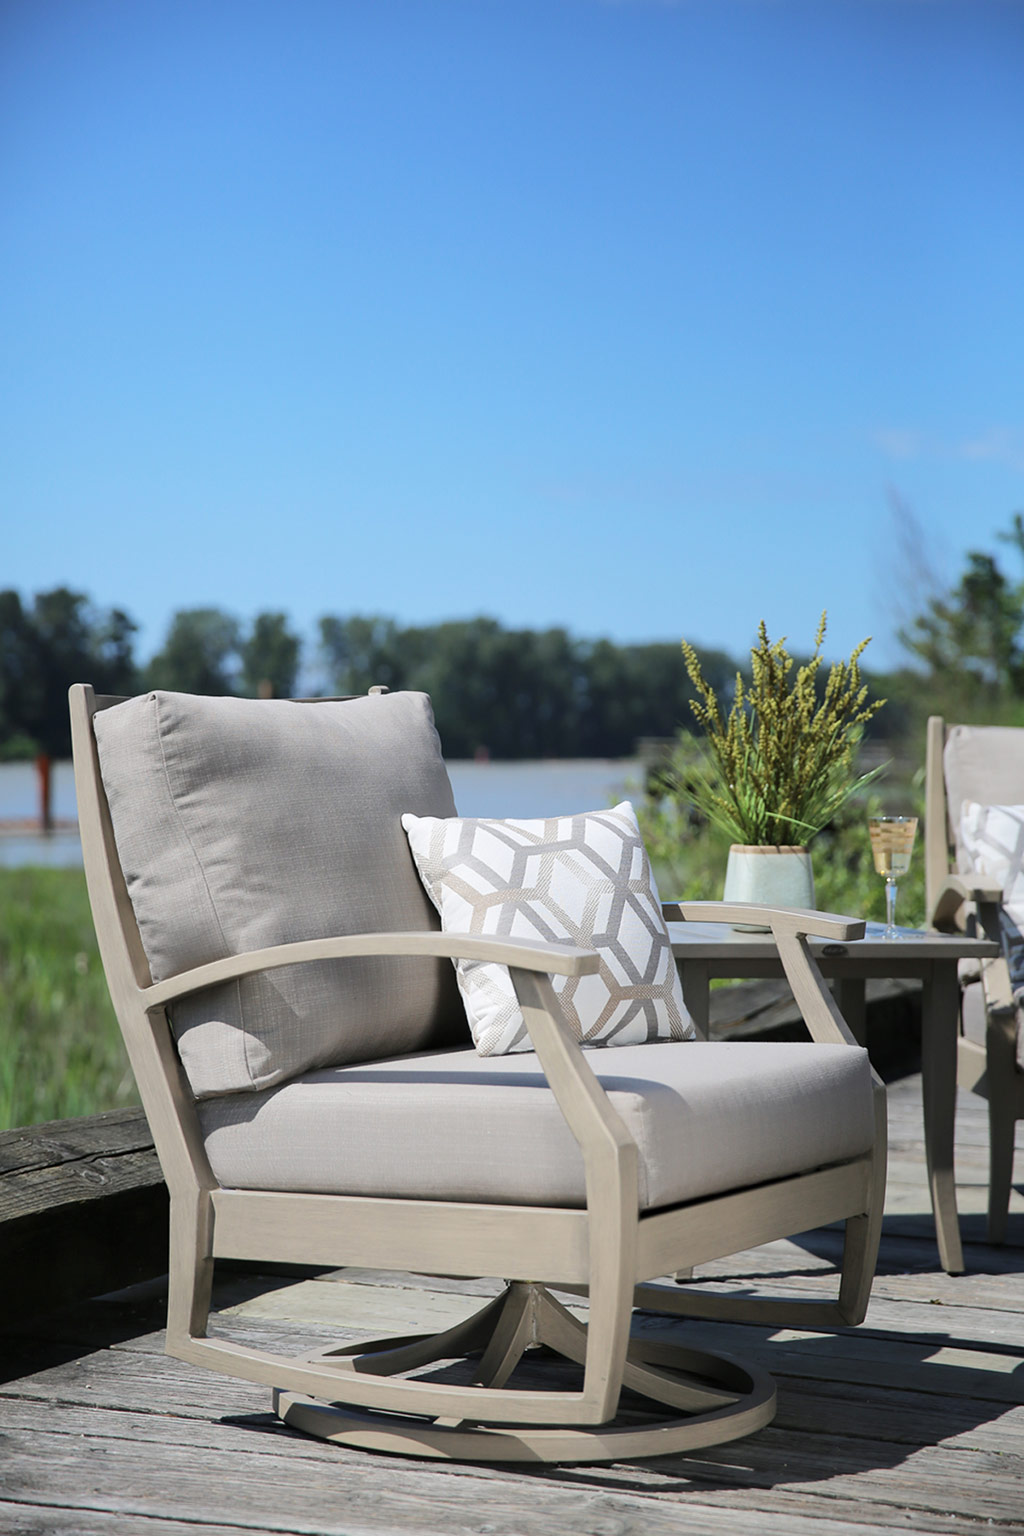 Wellington patio furniture collection from ratana for Furniture wellington